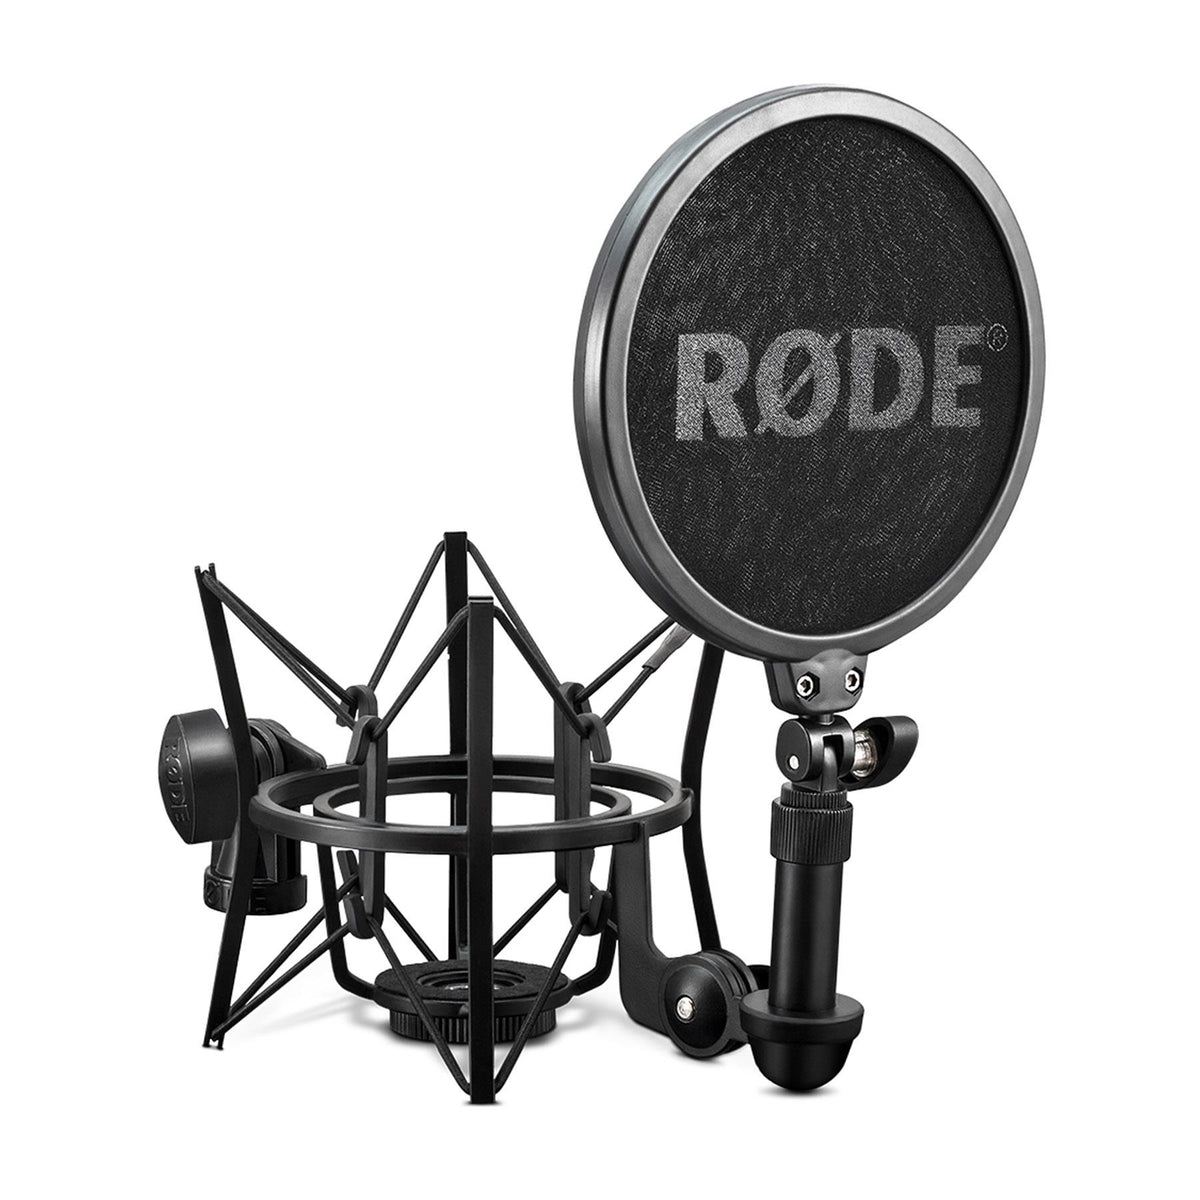 Rode NT1 Studio Condenser Microphone with Shock Mount, Pop Filter, and Cable